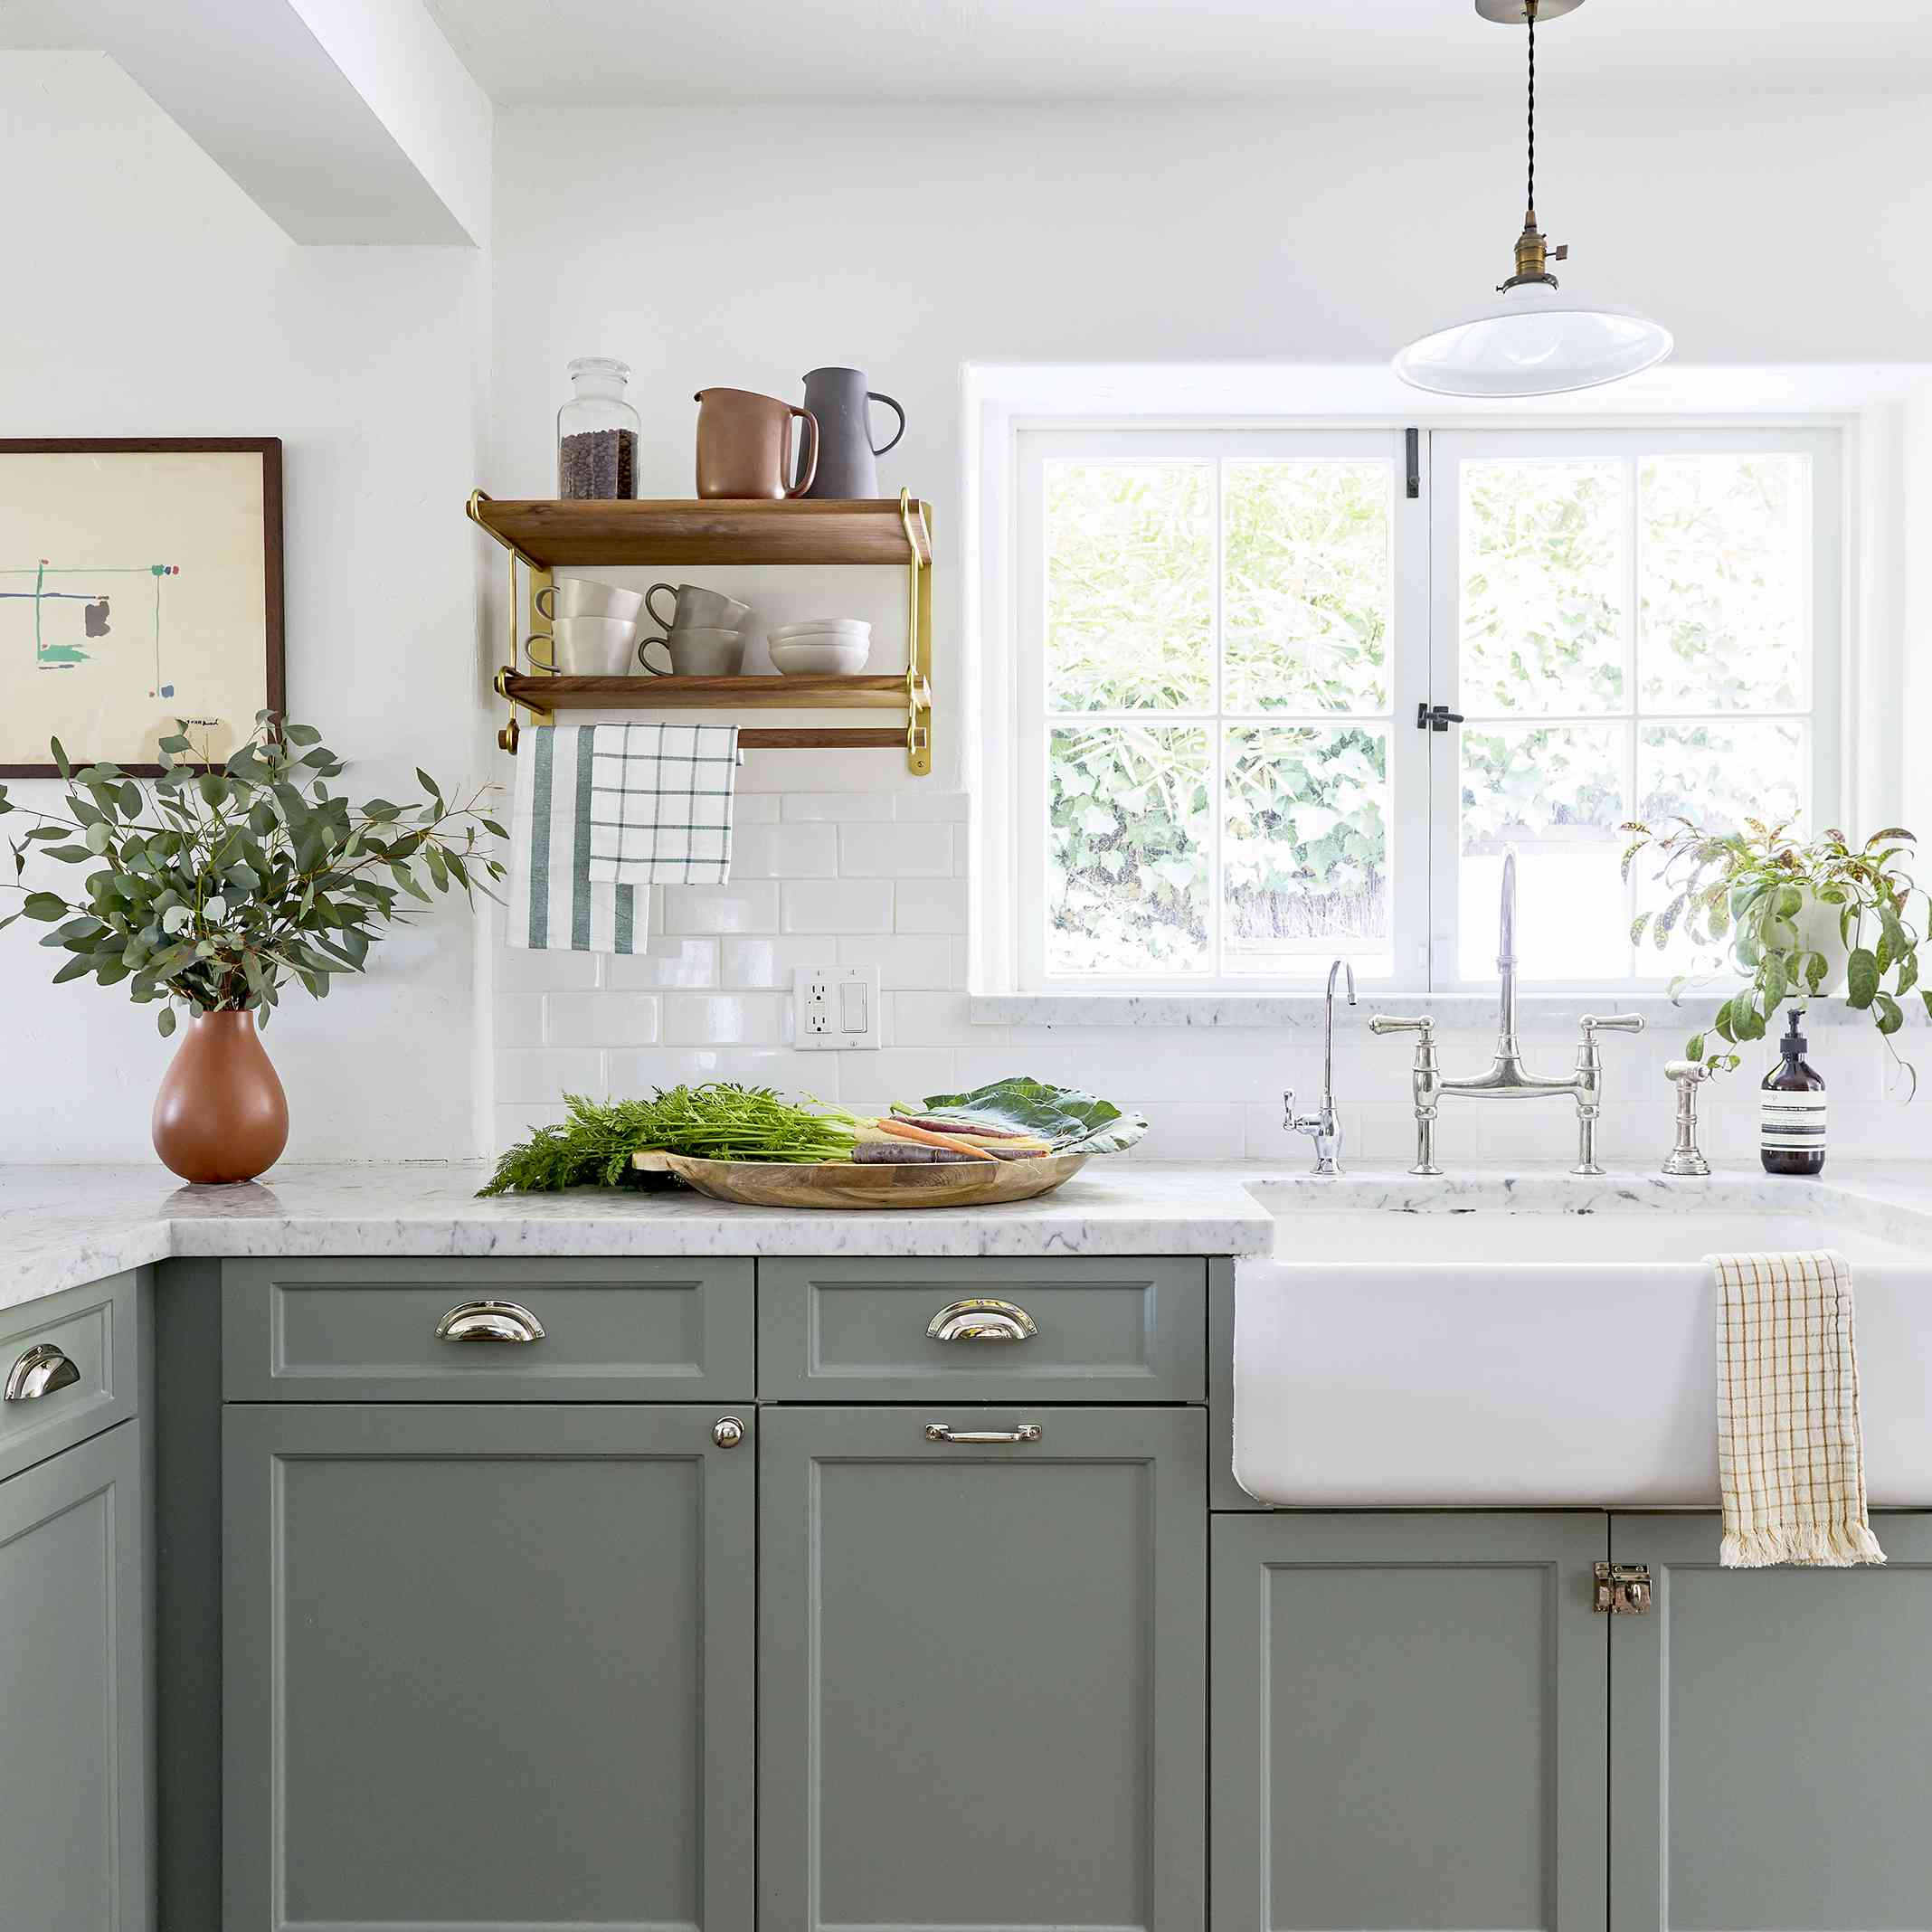 Kitchen styled by Emily Edith Bowser, designed by Sarah E Zachary